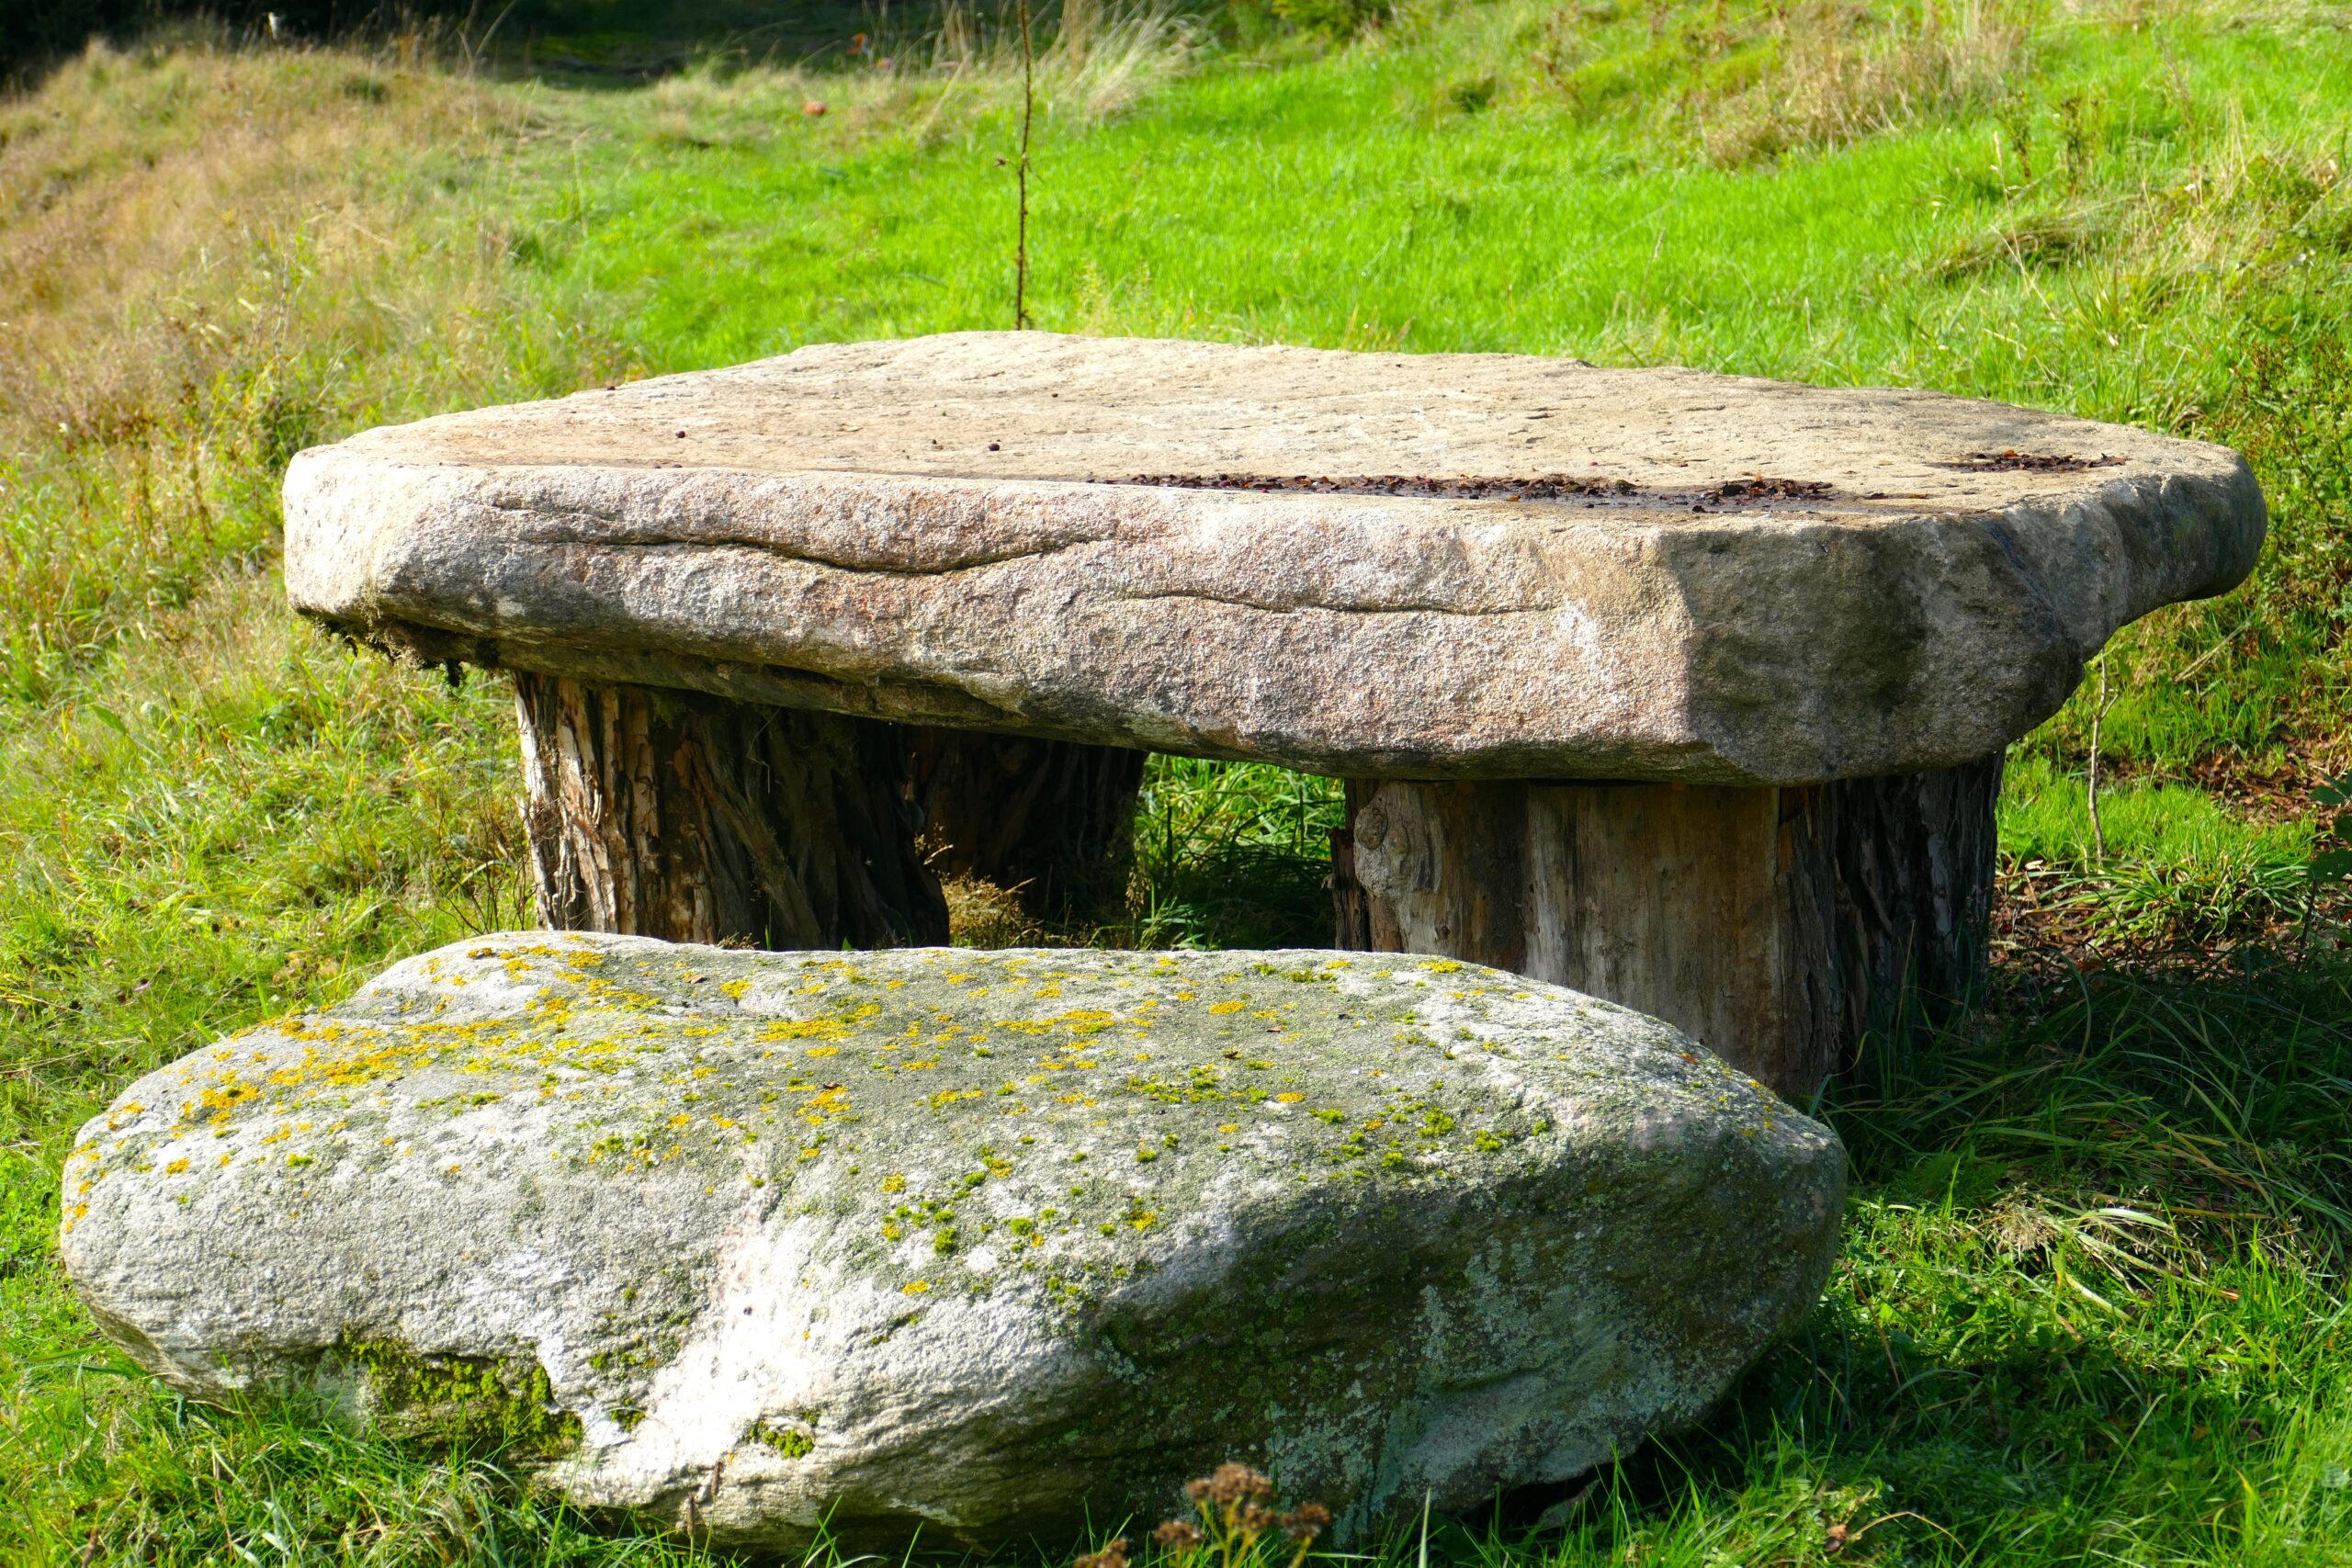 stone-table-2814444